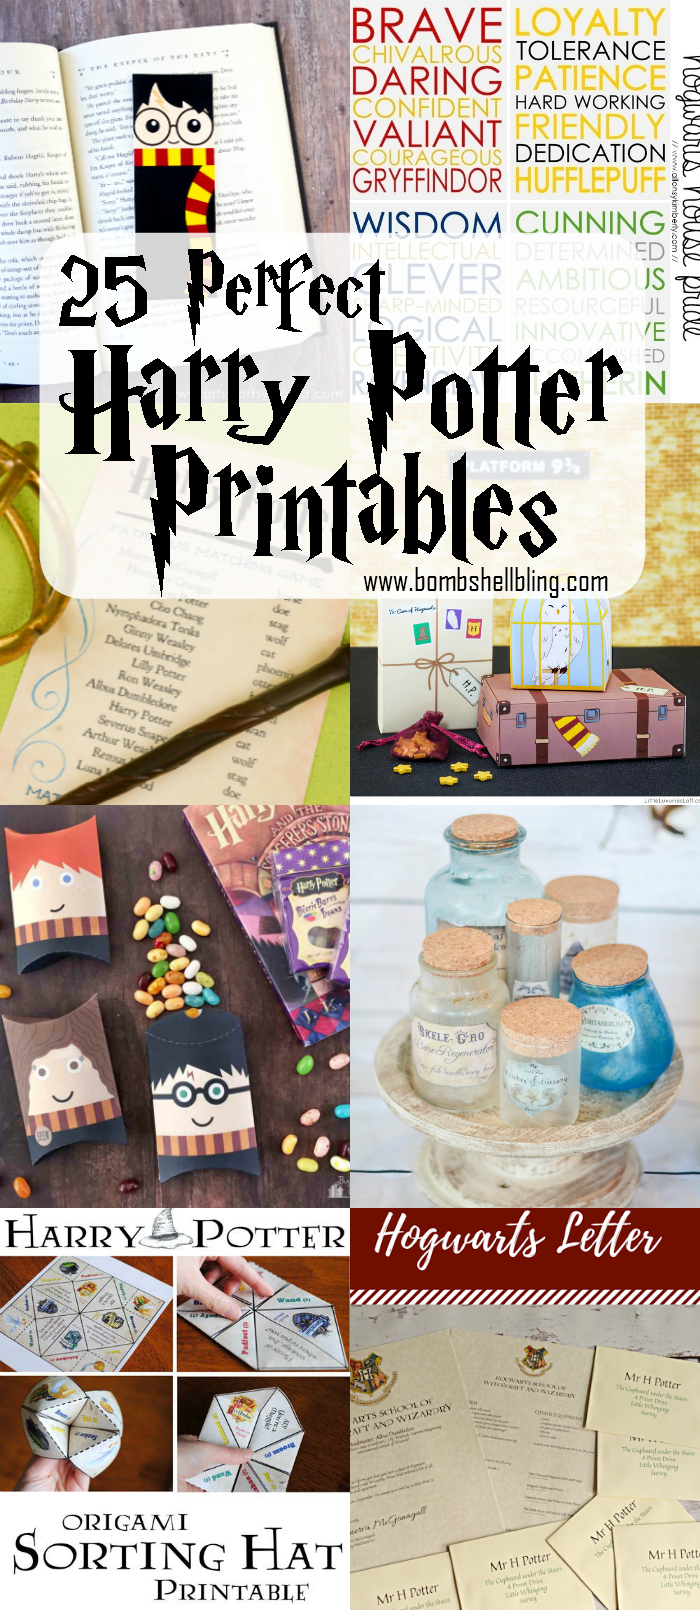 photograph relating to Harry Potter Potion Book Printable named 25 Best Harry Potter Printables - Gathered through Bombs